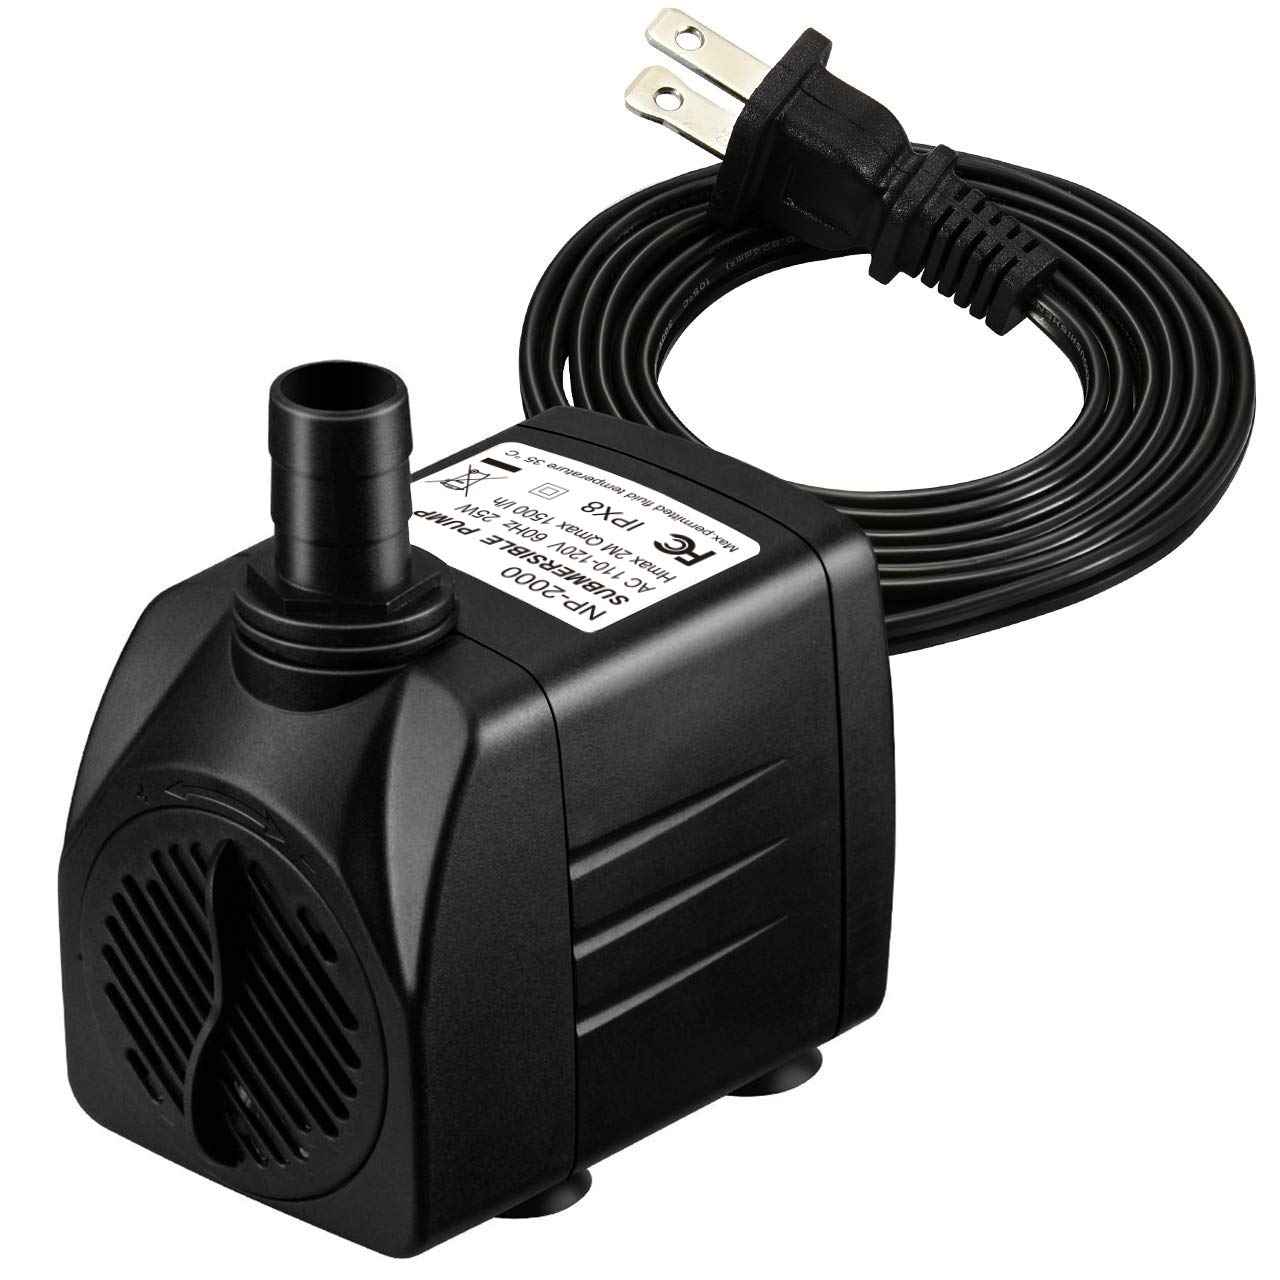 Homasy 400GPH Submersible Pump 25W Fountain Water Pump with 5.9ft Power Cord, 2 Nozzles for Aquarium, Fish Tank, Pond, Statuary, Hydroponics by Homasy